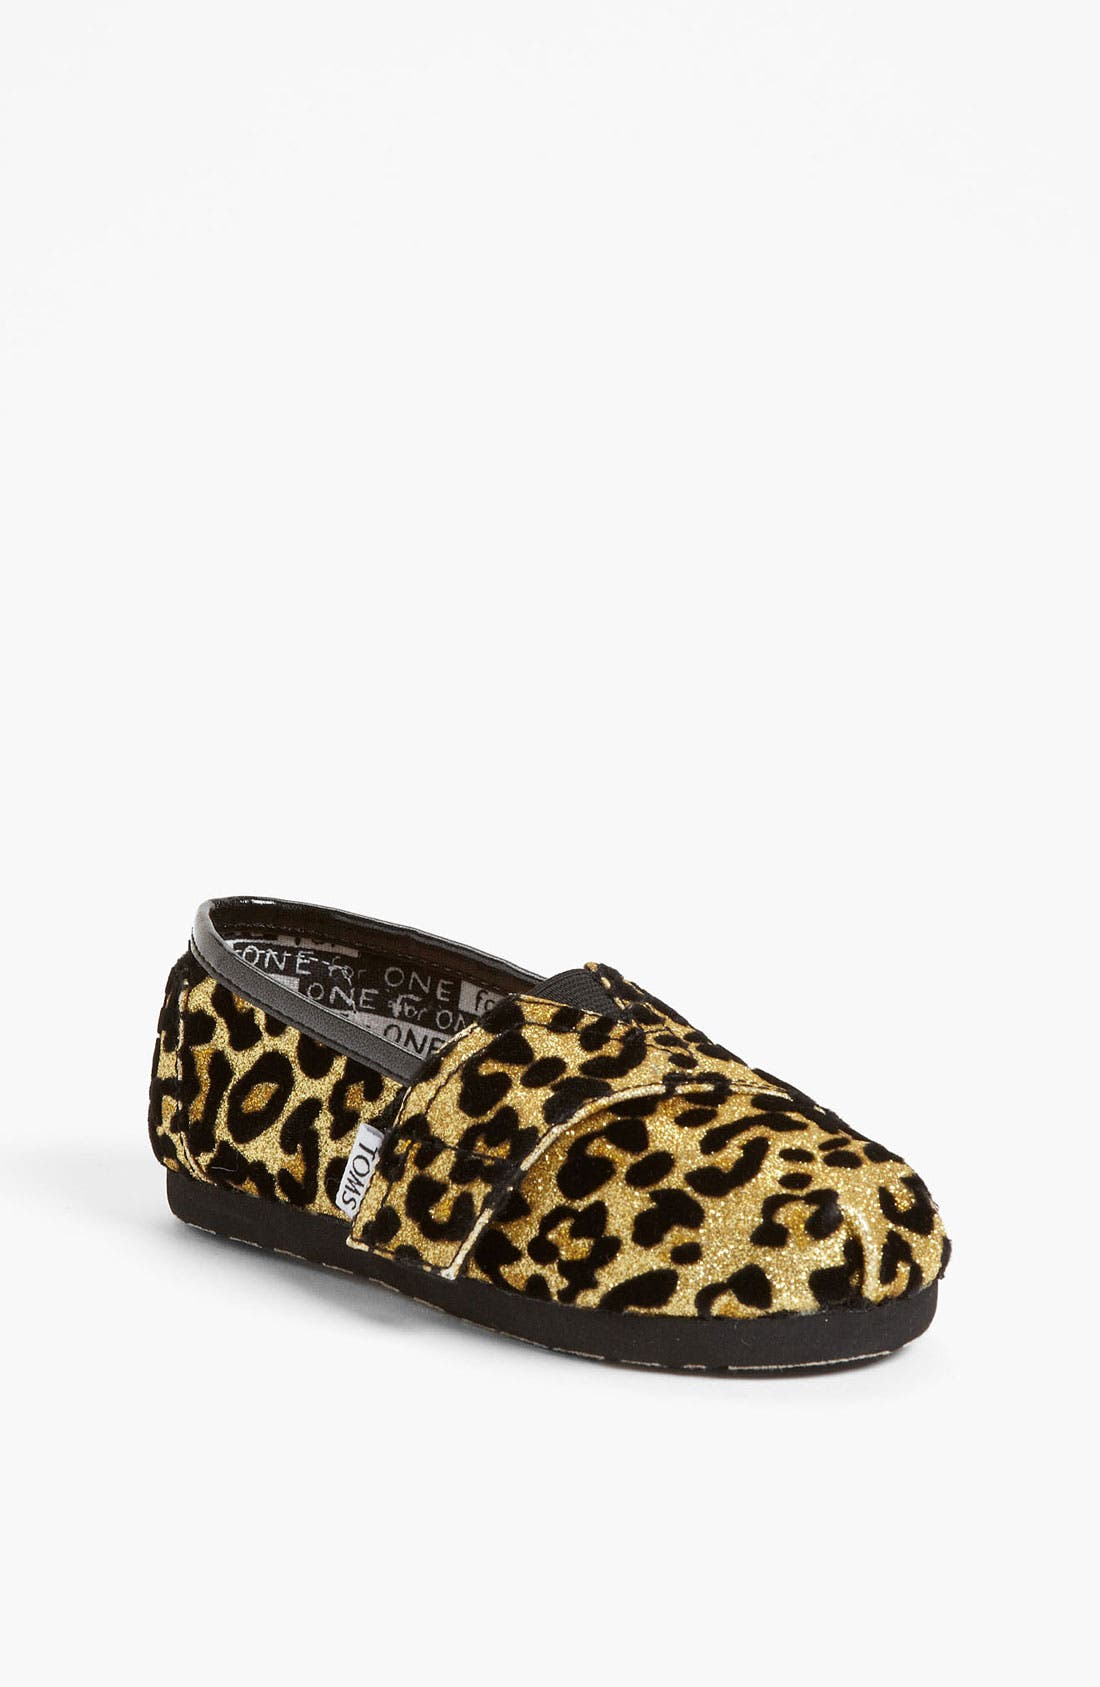 Alternate Image 1 Selected - TOMS 'Classic Tiny - Glitter' Print Slip-On (Baby, Walker & Toddler)(Nordstrom Exclusive)